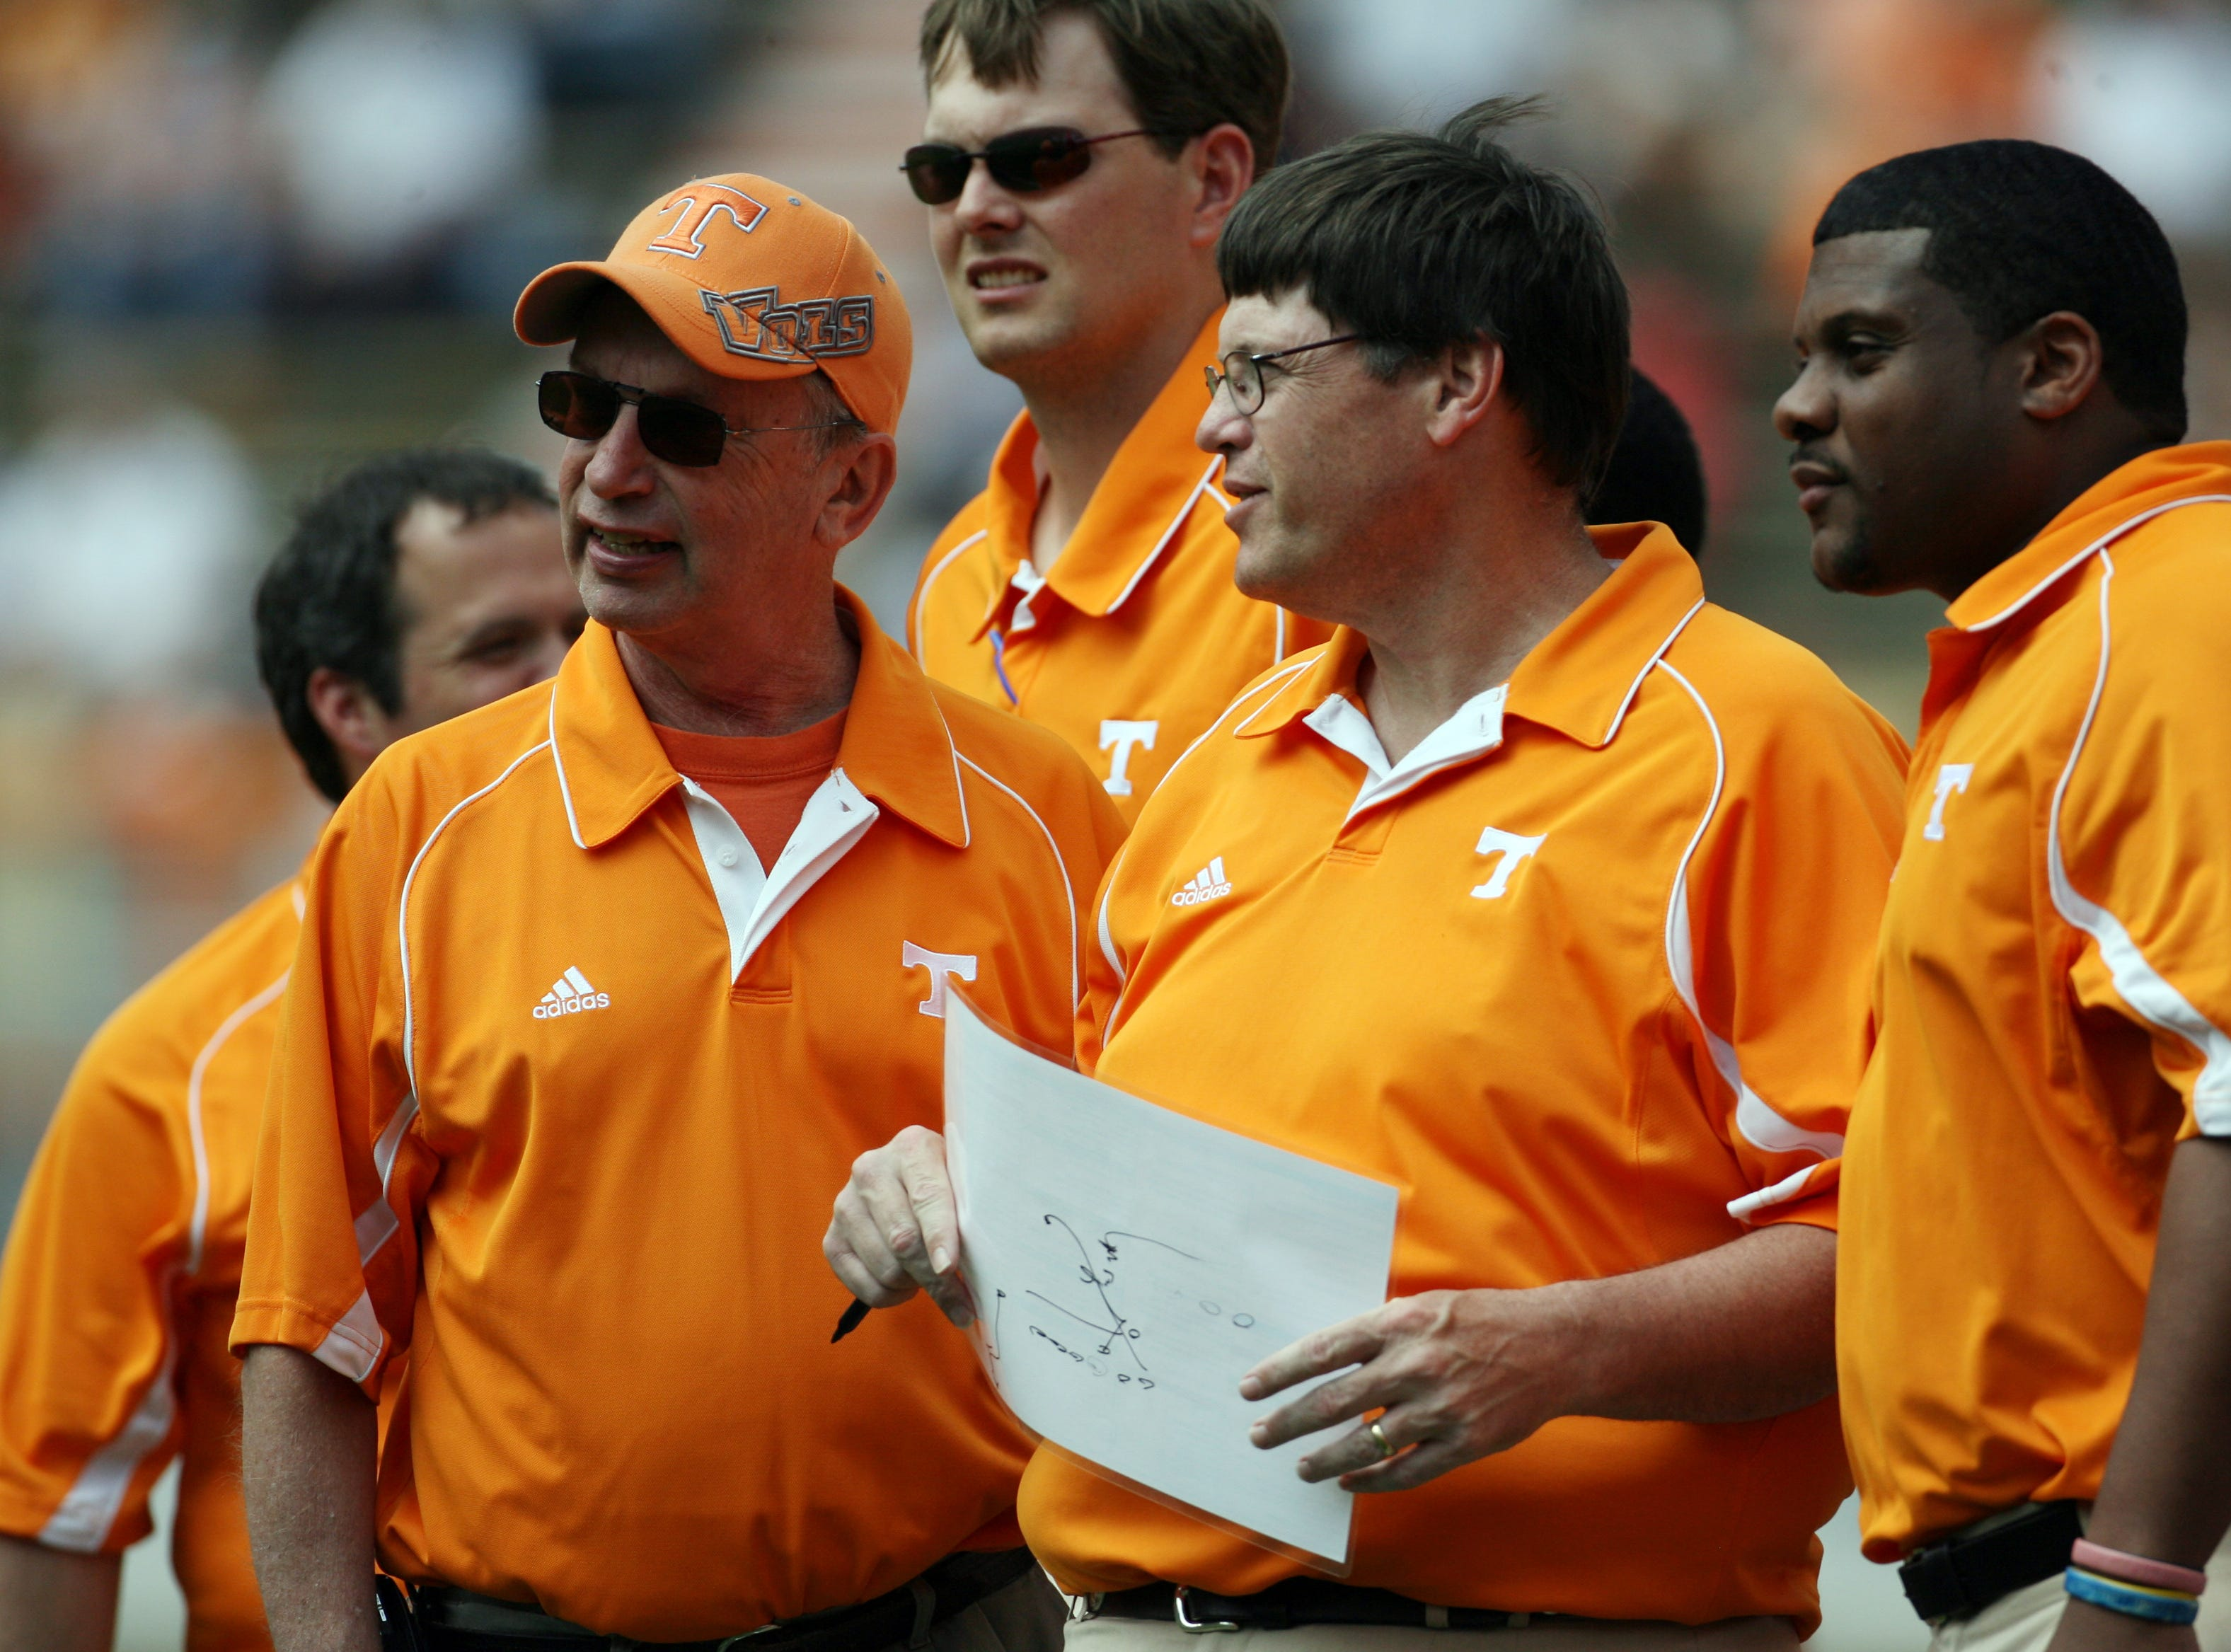 News Sentinel sports writer and celebrity head coach John Adams, left, chats with Tennessee assistant coach Jim Chaney, center, during the Orange and White game at Neyland Stadium Saturday, Apr. 17, 2010.